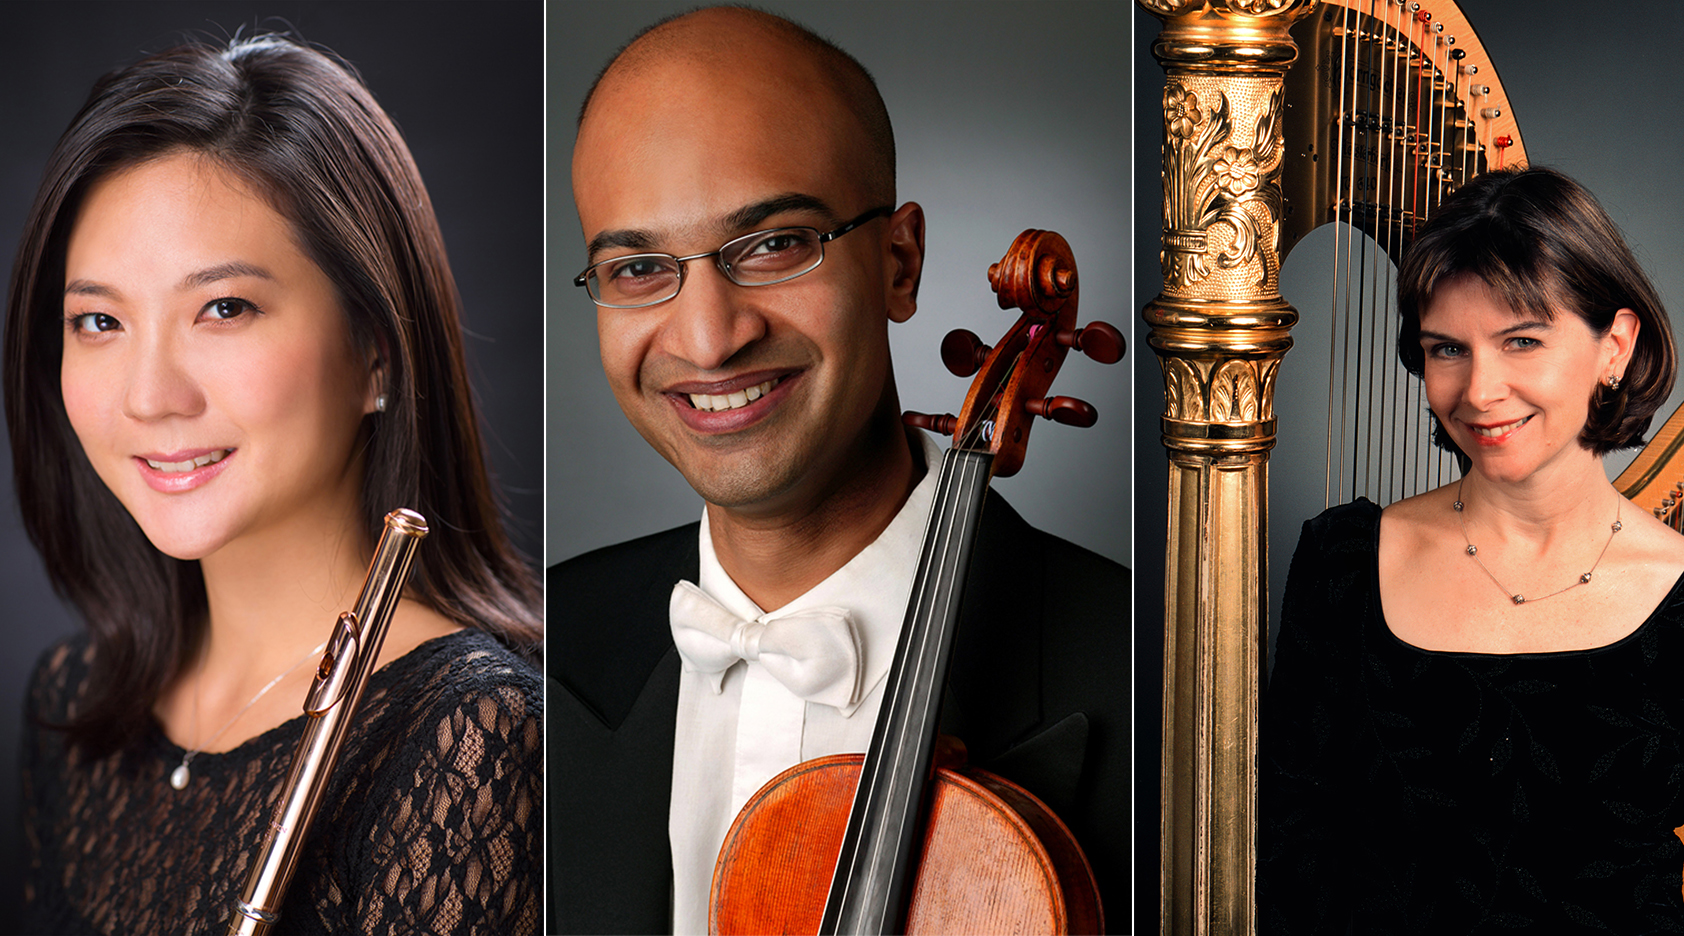 New York Philharmonic Musicians To Give Free Concert For Those With